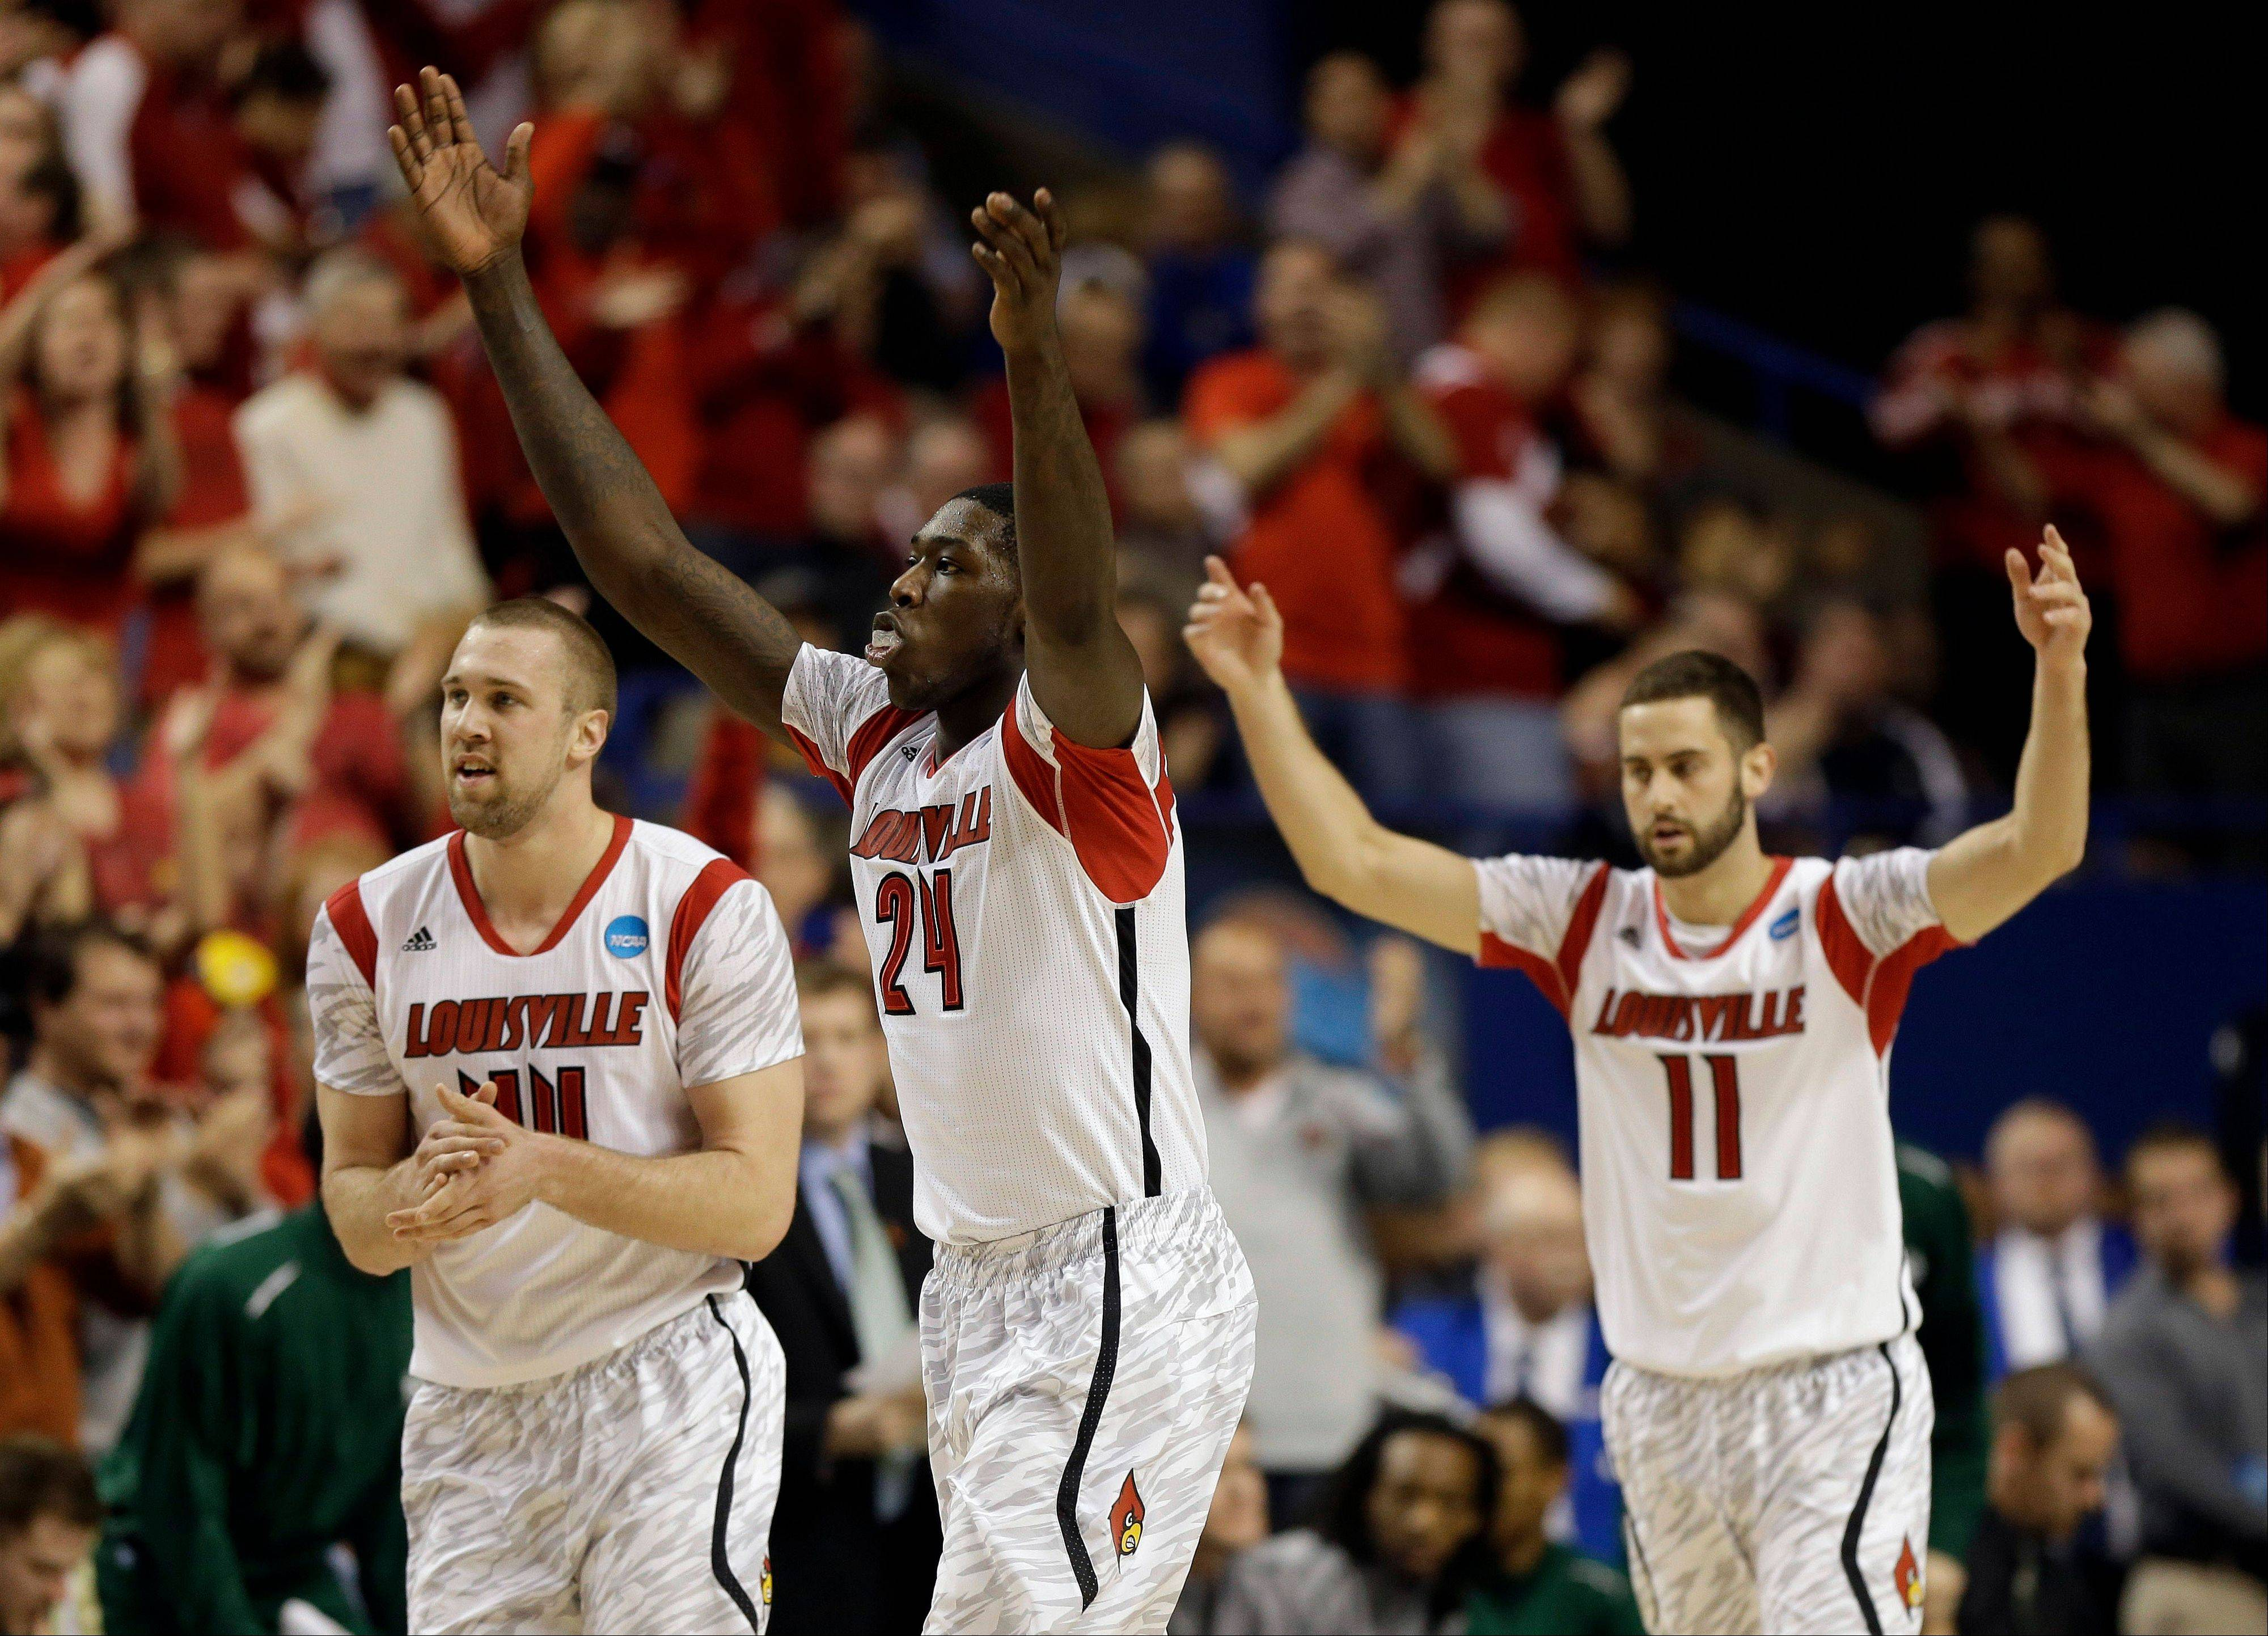 From left to right, Louisville's Stephan Van Treese, Montrezl Harrell and Luke Hancock react after a basket in the first half of a third-round NCAA college basketball tournament game against Colorado State, Saturday, March 23, 2013, in Lexington, Ky. (AP Photo/John Bazemore)